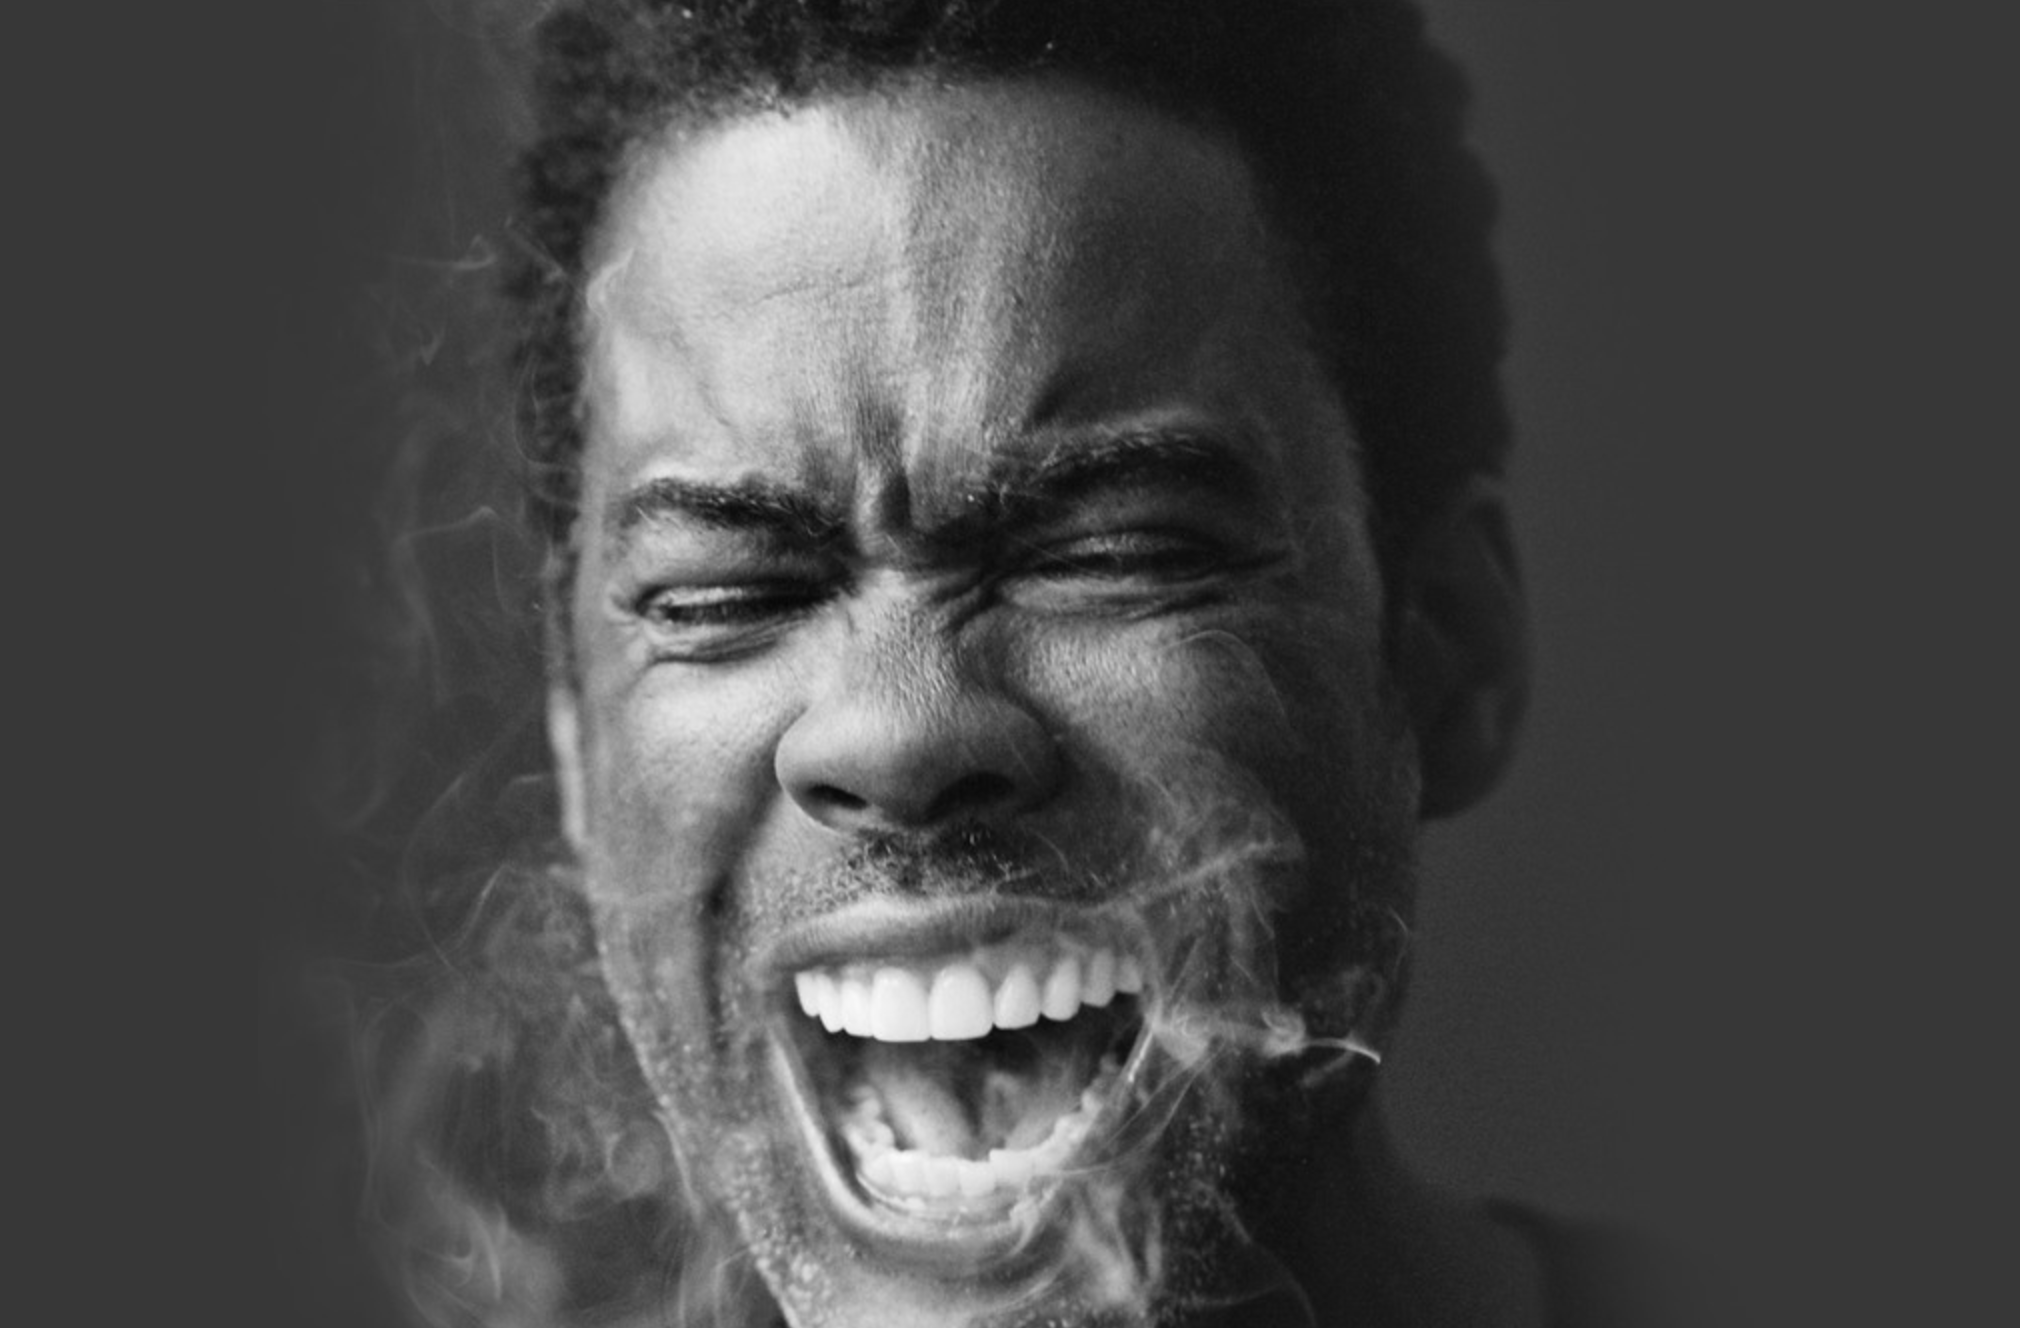 #FanArt Tuesday with Chris Rock